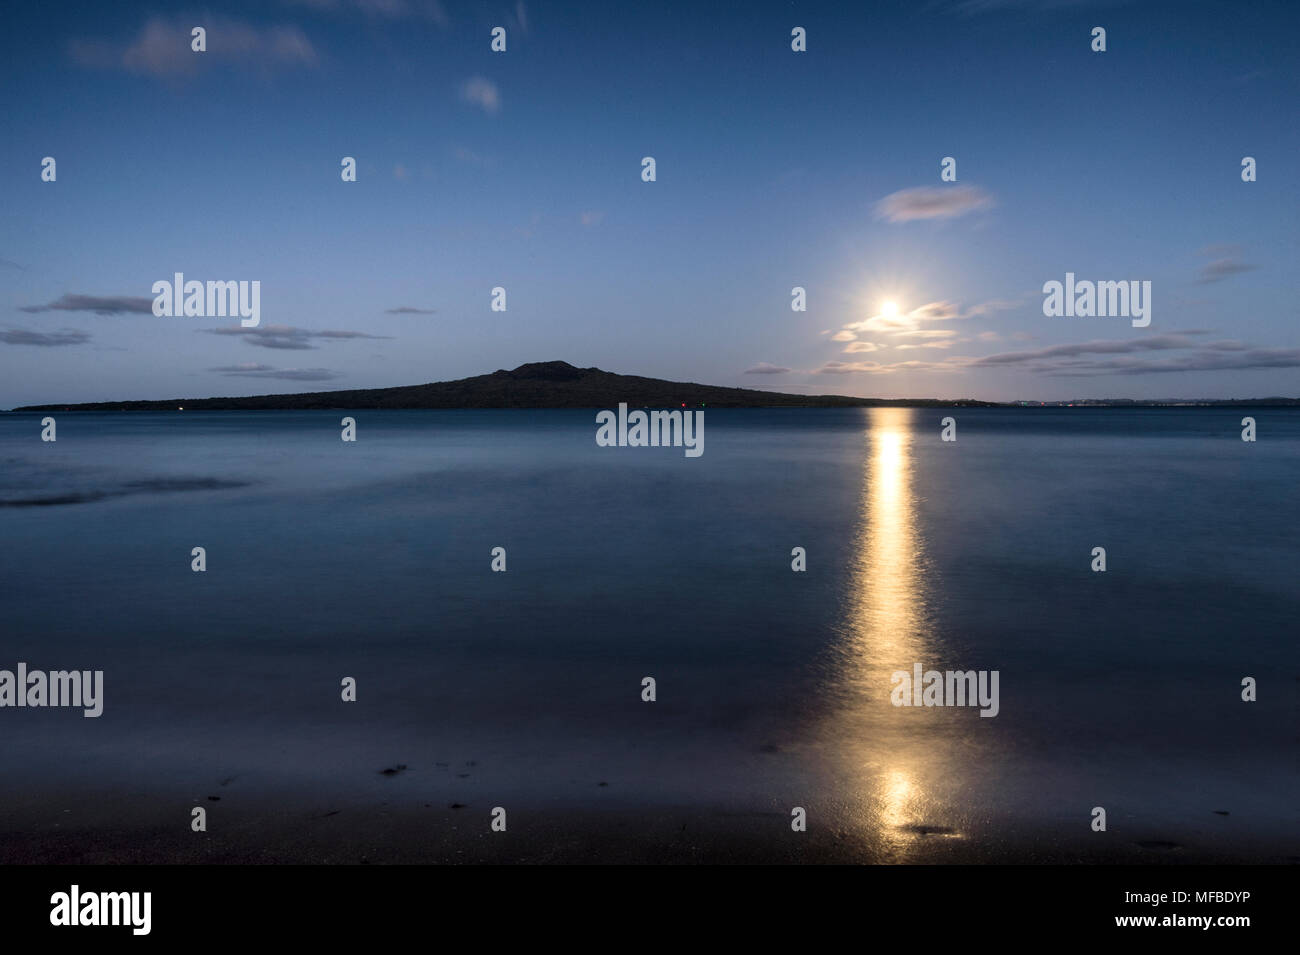 Full moon over Rangitoto Island, Hauraki Gulf Auckland. - Stock Image